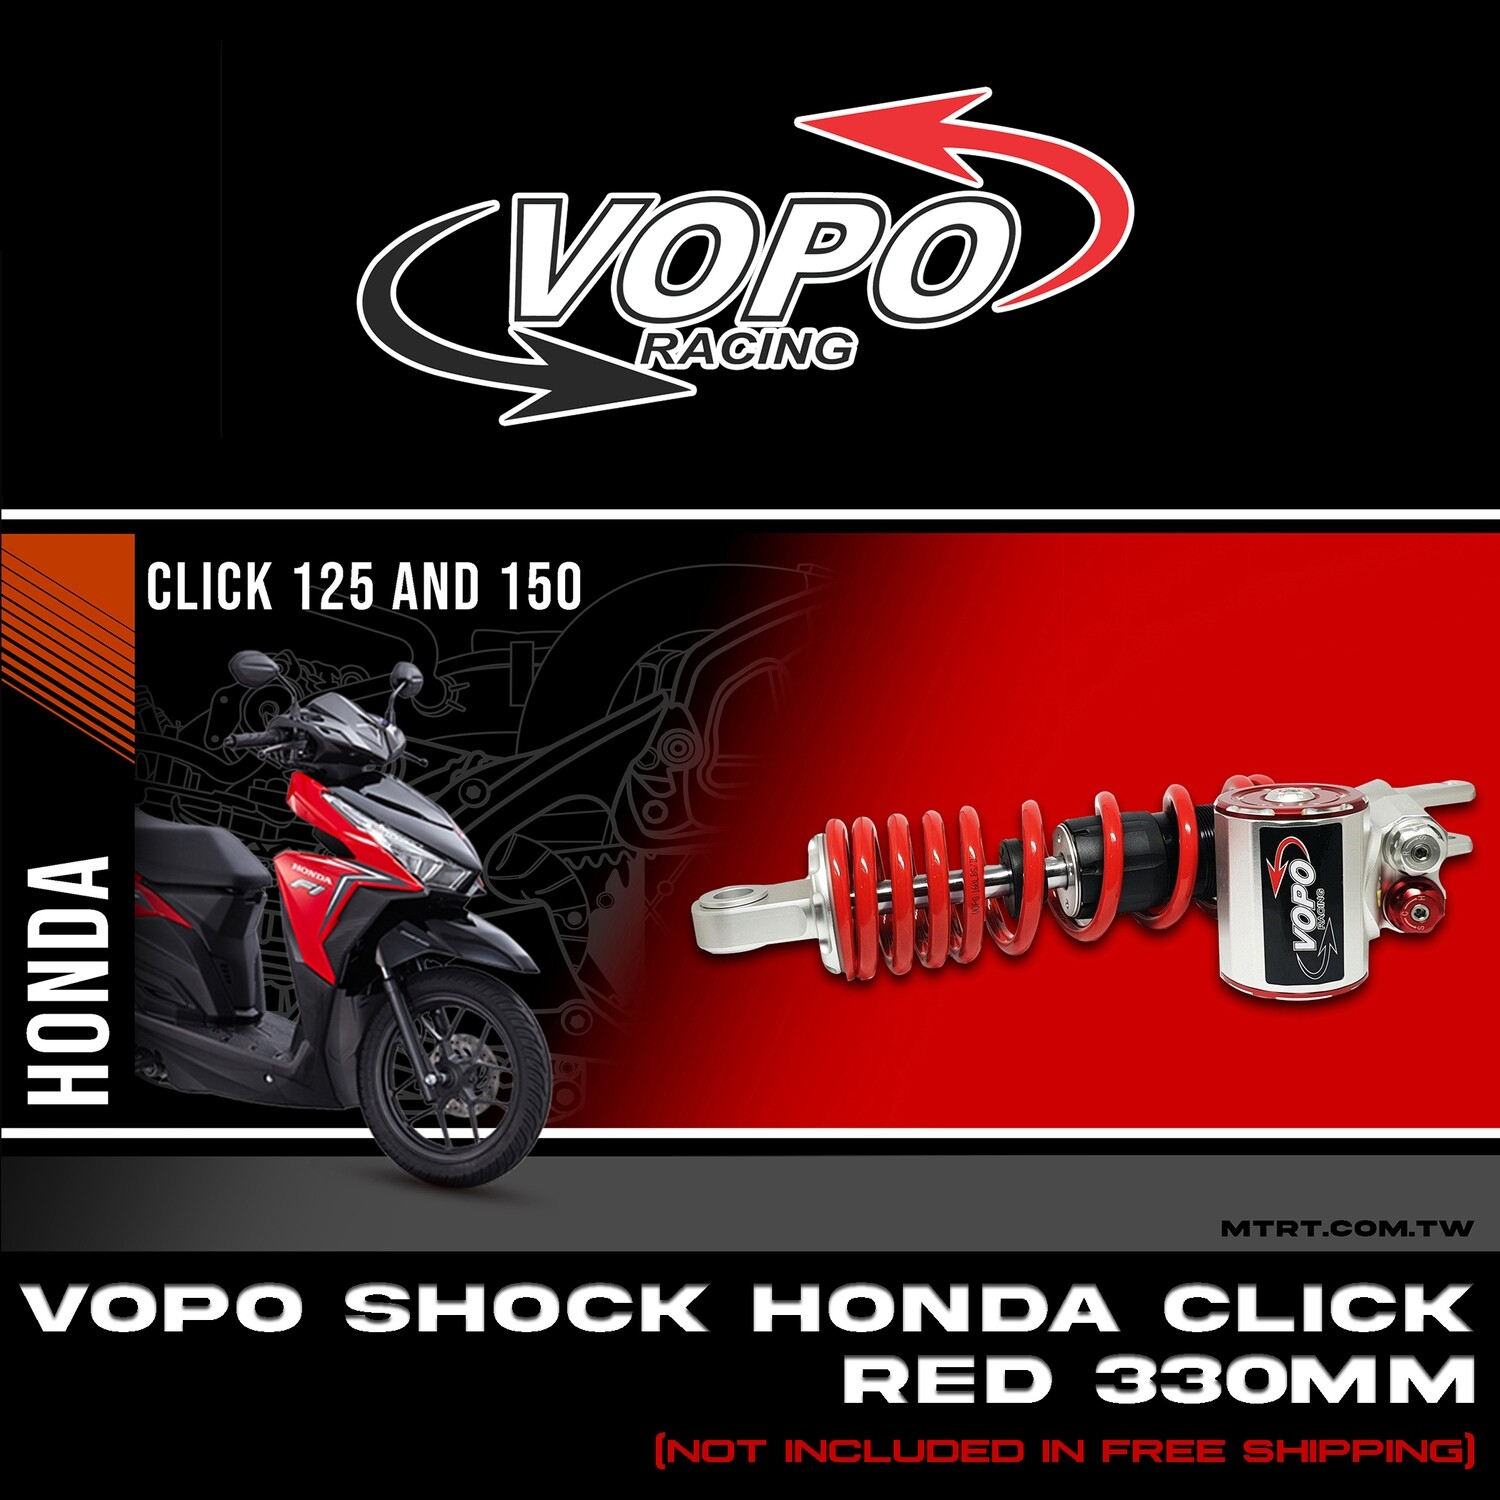 VOPO SHOCK HONDA BEATFI RED 330MM